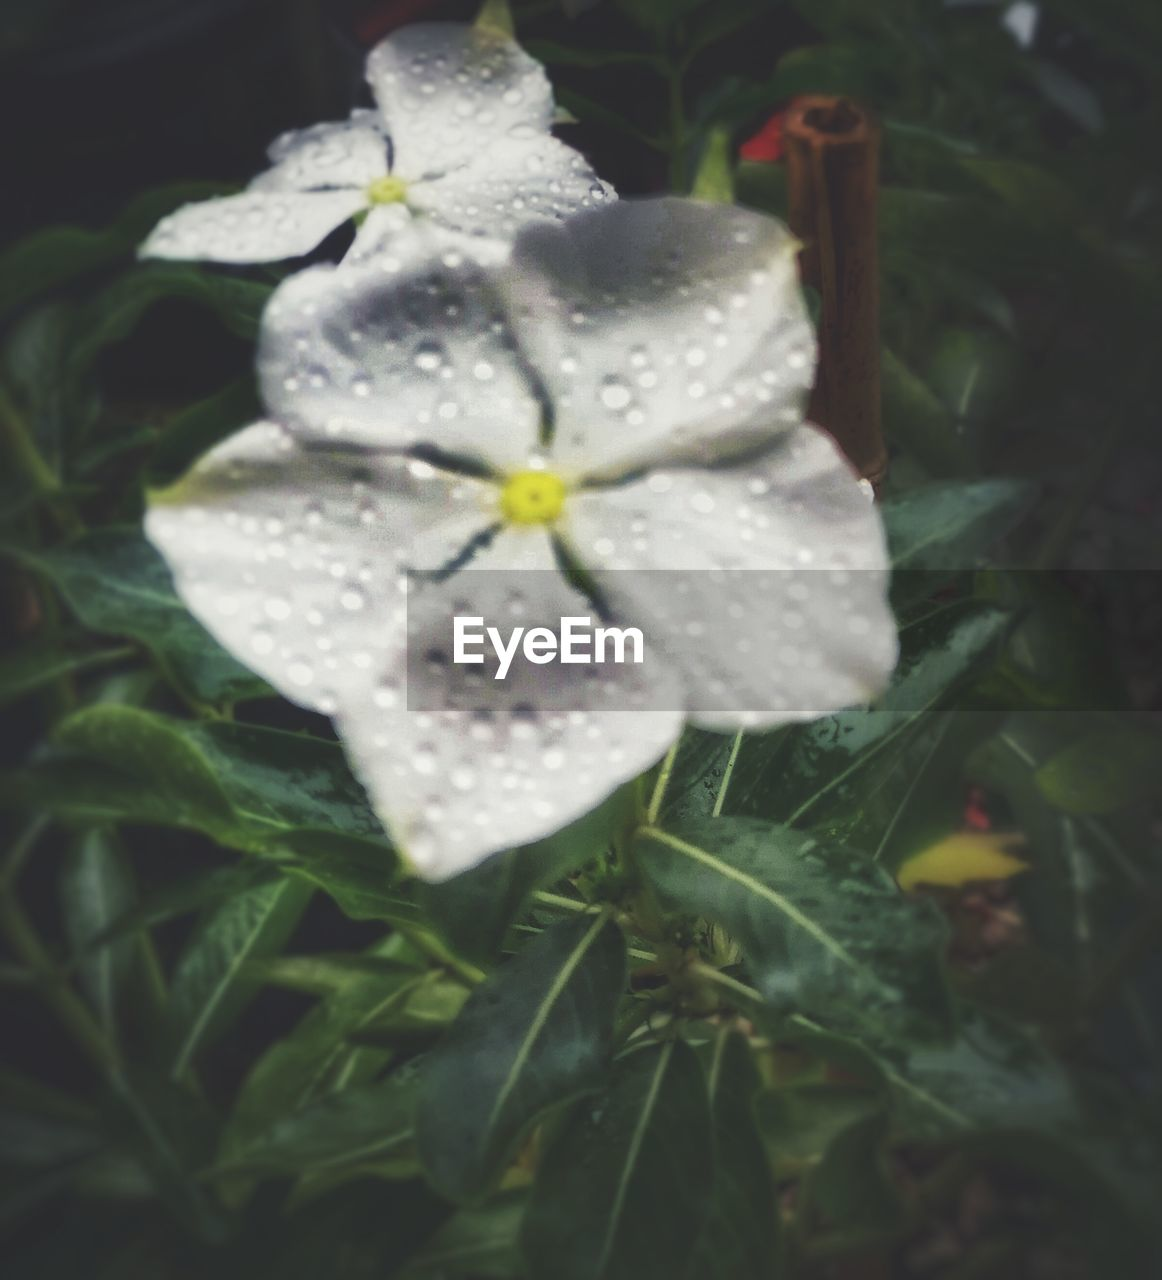 flower, petal, white color, growth, fragility, wet, nature, close-up, beauty in nature, no people, flower head, leaf, freshness, day, periwinkle, outdoors